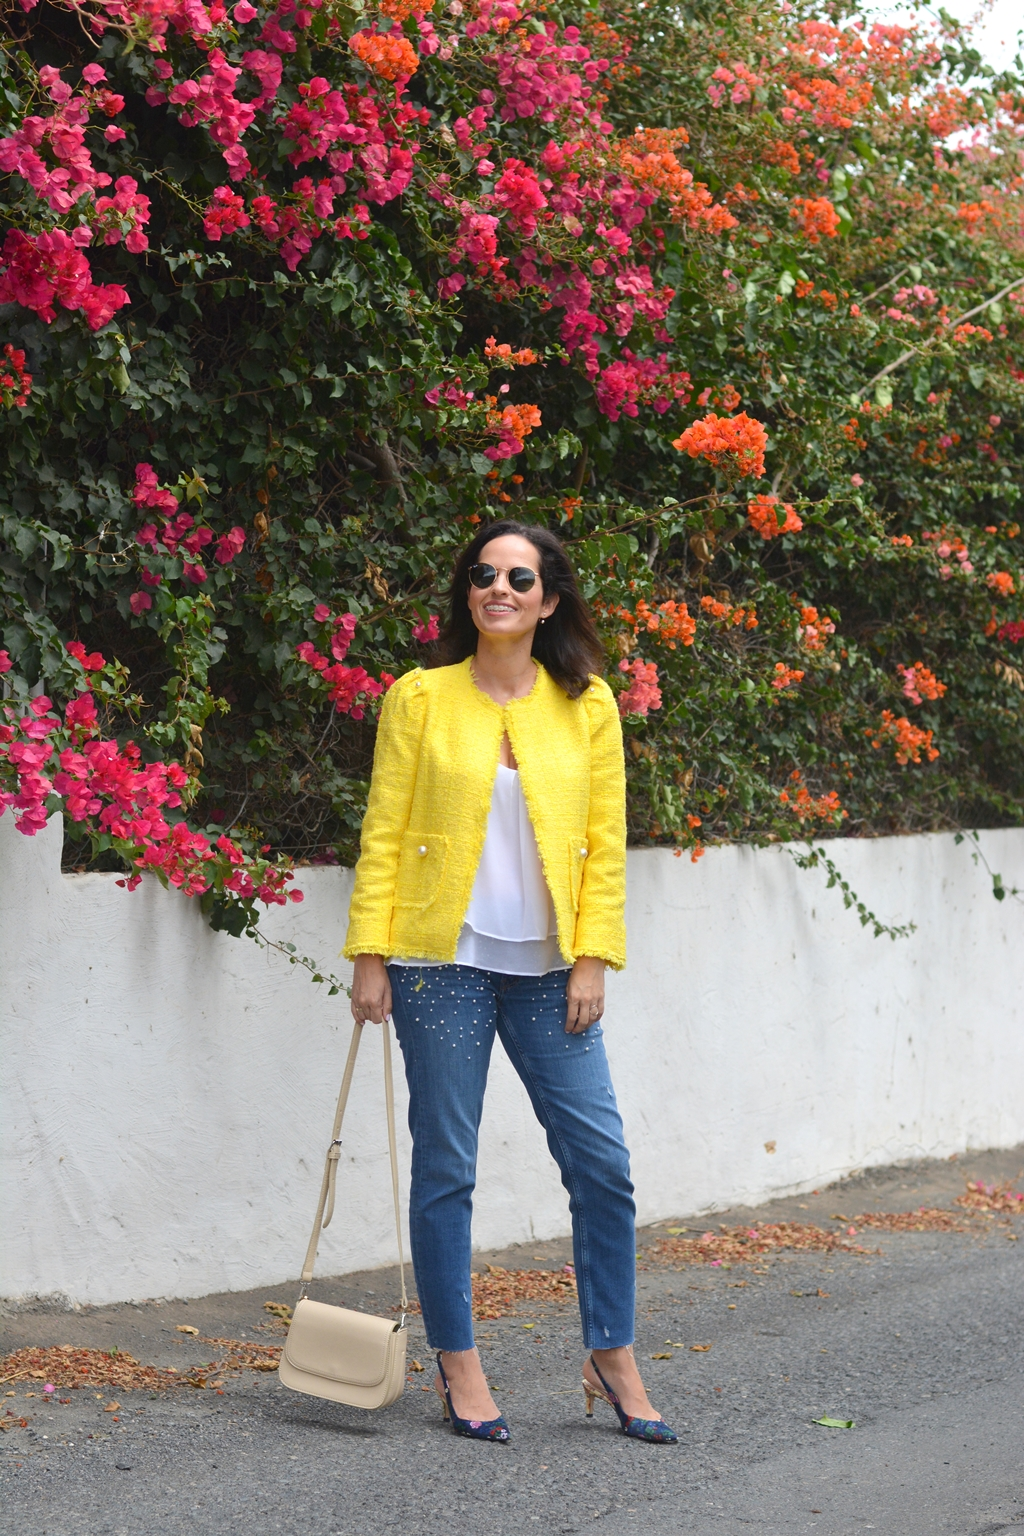 zara-yellow-tweed-jacket-outfit